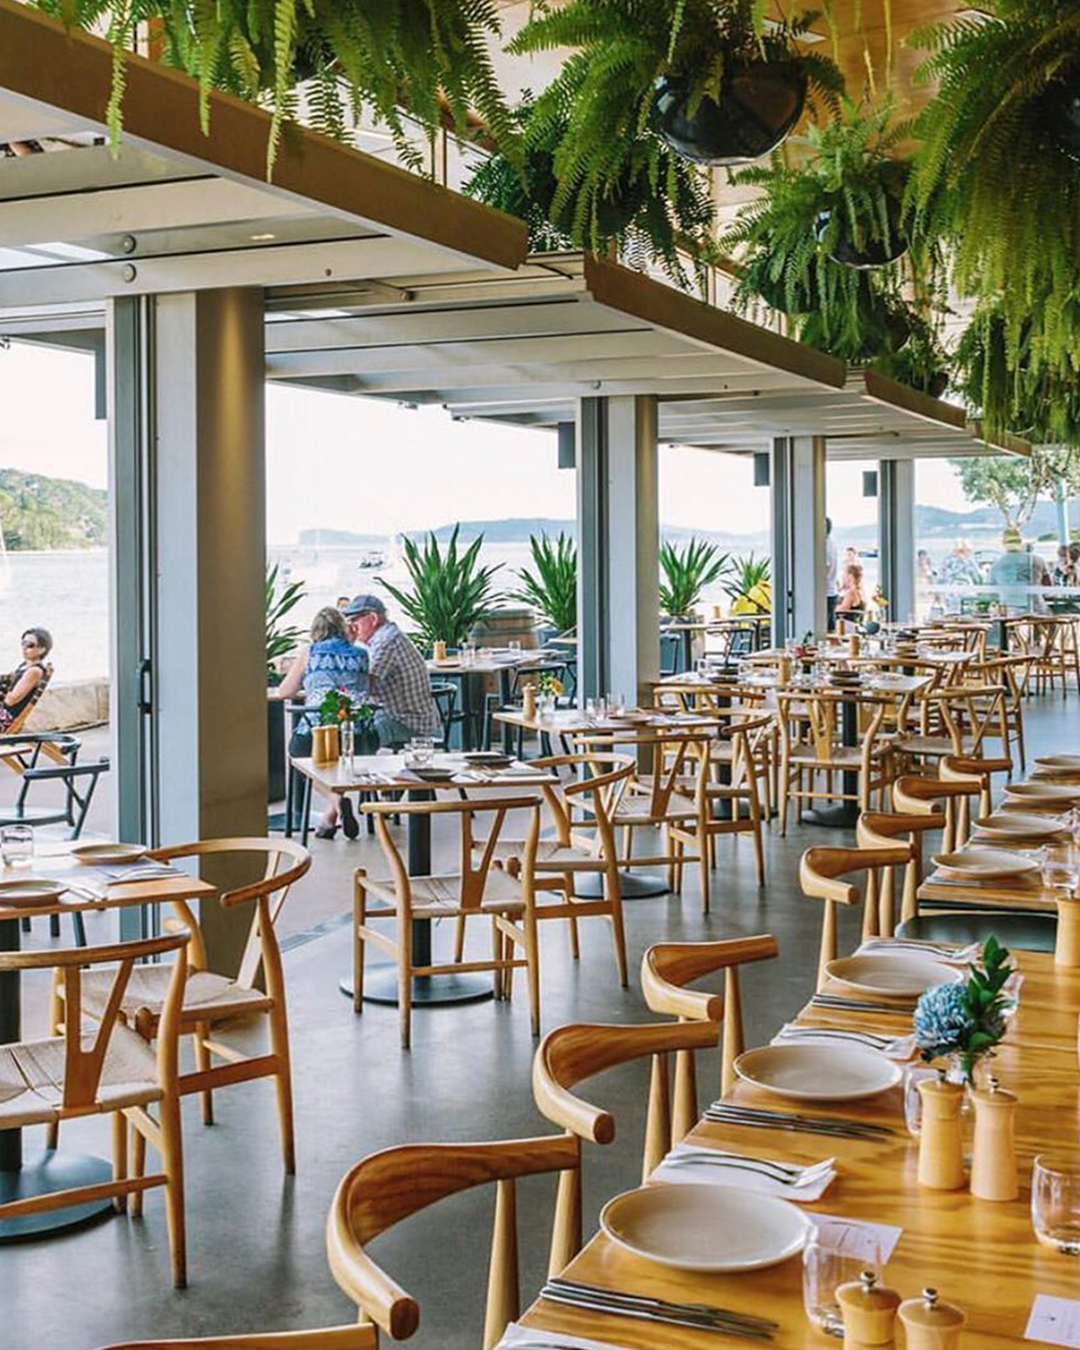 A very open dining space overlooking the water with greenery hanging from the roof and light timber furnishings.